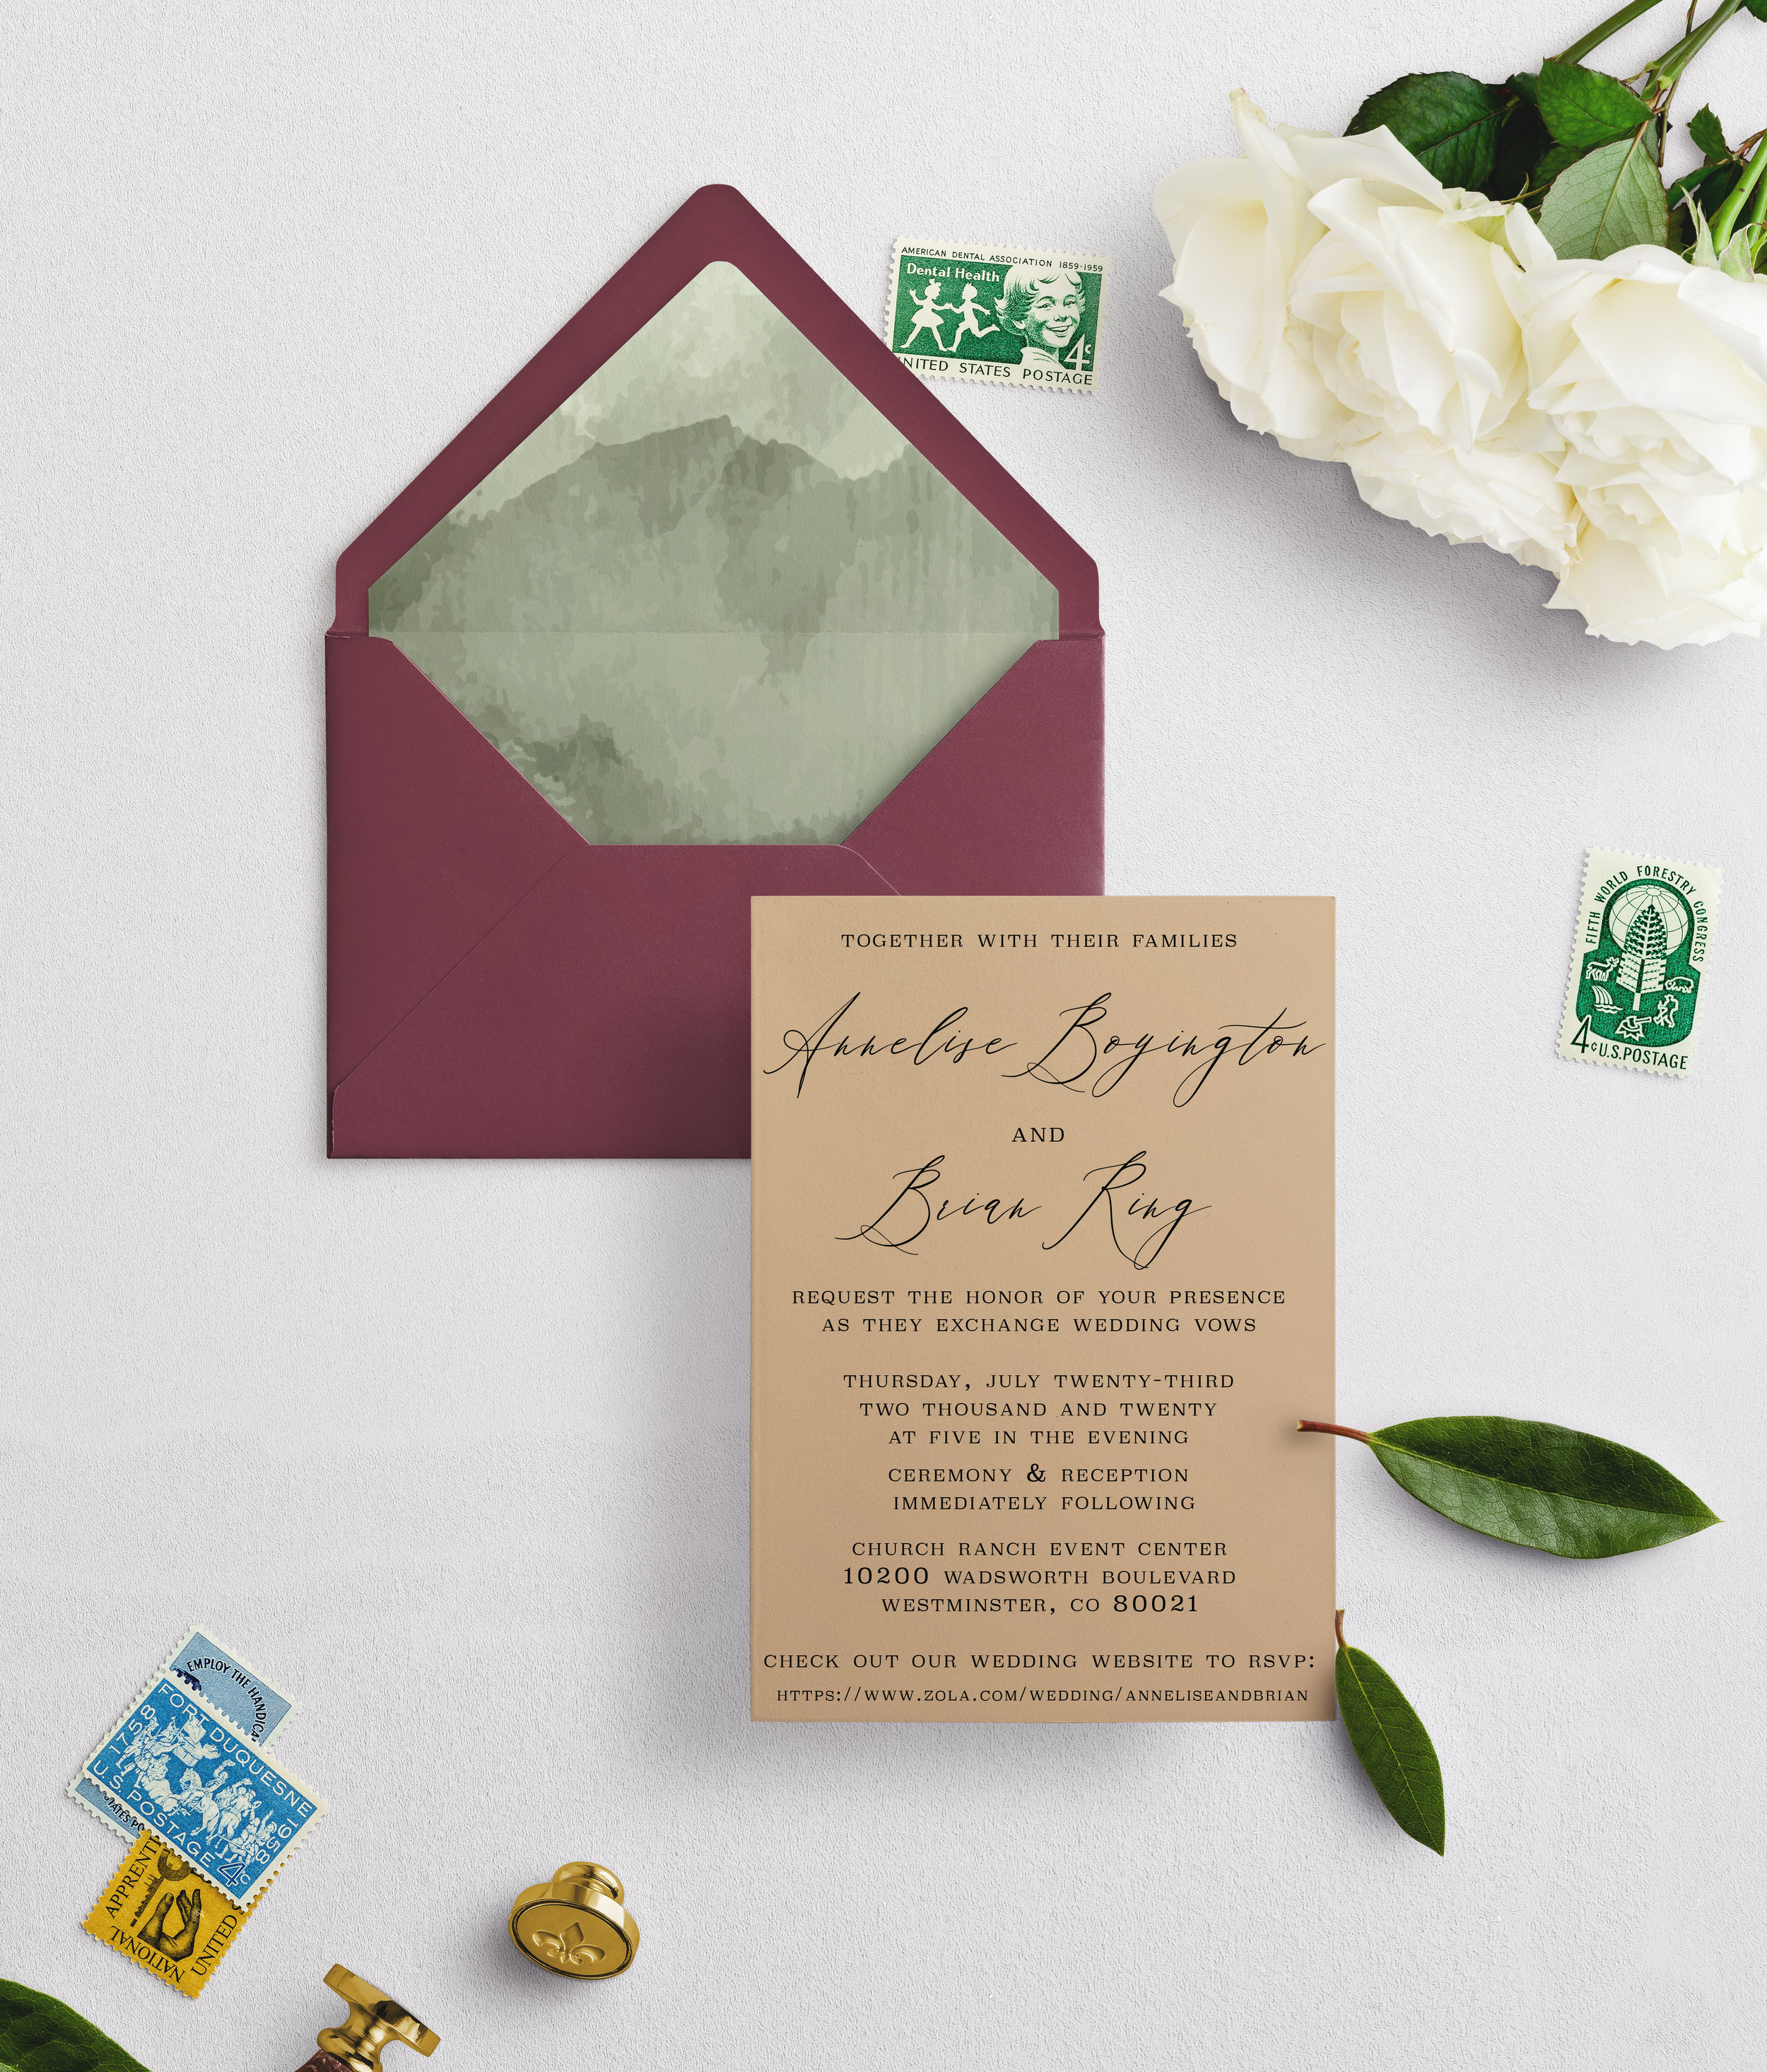 Invitation Decision:  Cottonwood Suite (included)   Envelope Color?:  Burgundy   Envelope Liner:  Watercolor Green Liner (Premade)   Quantity:  I do not need any extra invitations.   Wording:  Keep the wording as is, just include our personal wedding details.   Paper Type:  Keep as shown   Your RSVP Details/ Url?:  Check out our wedding website AT  https://www.zola.com/wedding/anneliseandbrian  to RSVP   I want more!:  No, I love the current offerings, I do not need to meet in person.   Shipping Address/ Return Address:  Ship to Annelise Boyington 19404 W 88TH DR Arvada CO, 80007